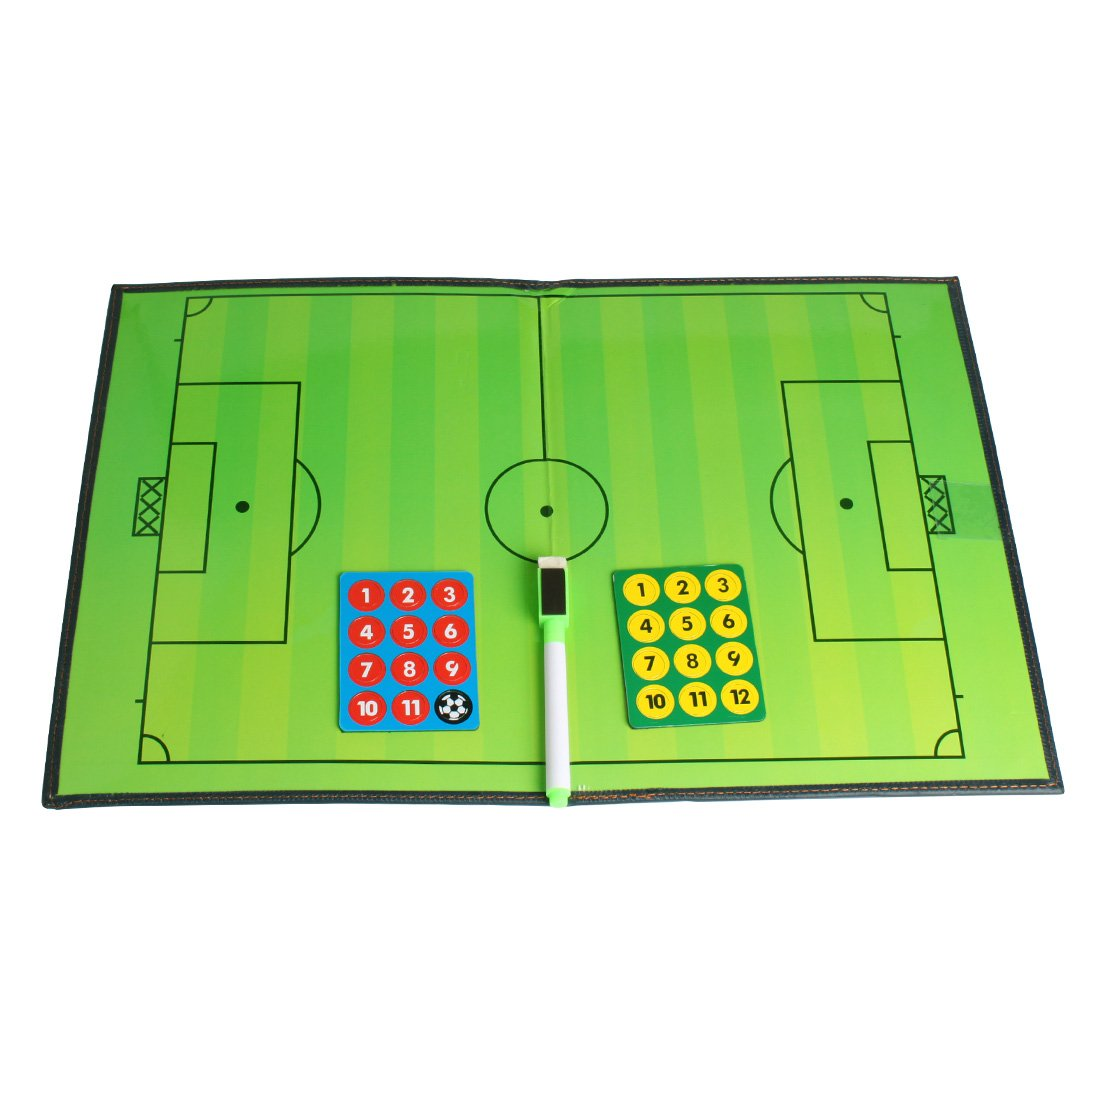 ANDUX Basketball Coaches Clipboard Strategy and Visualization Equipment Dry Erase Training Aid ZUB-01 (Basketball Coaches Board)